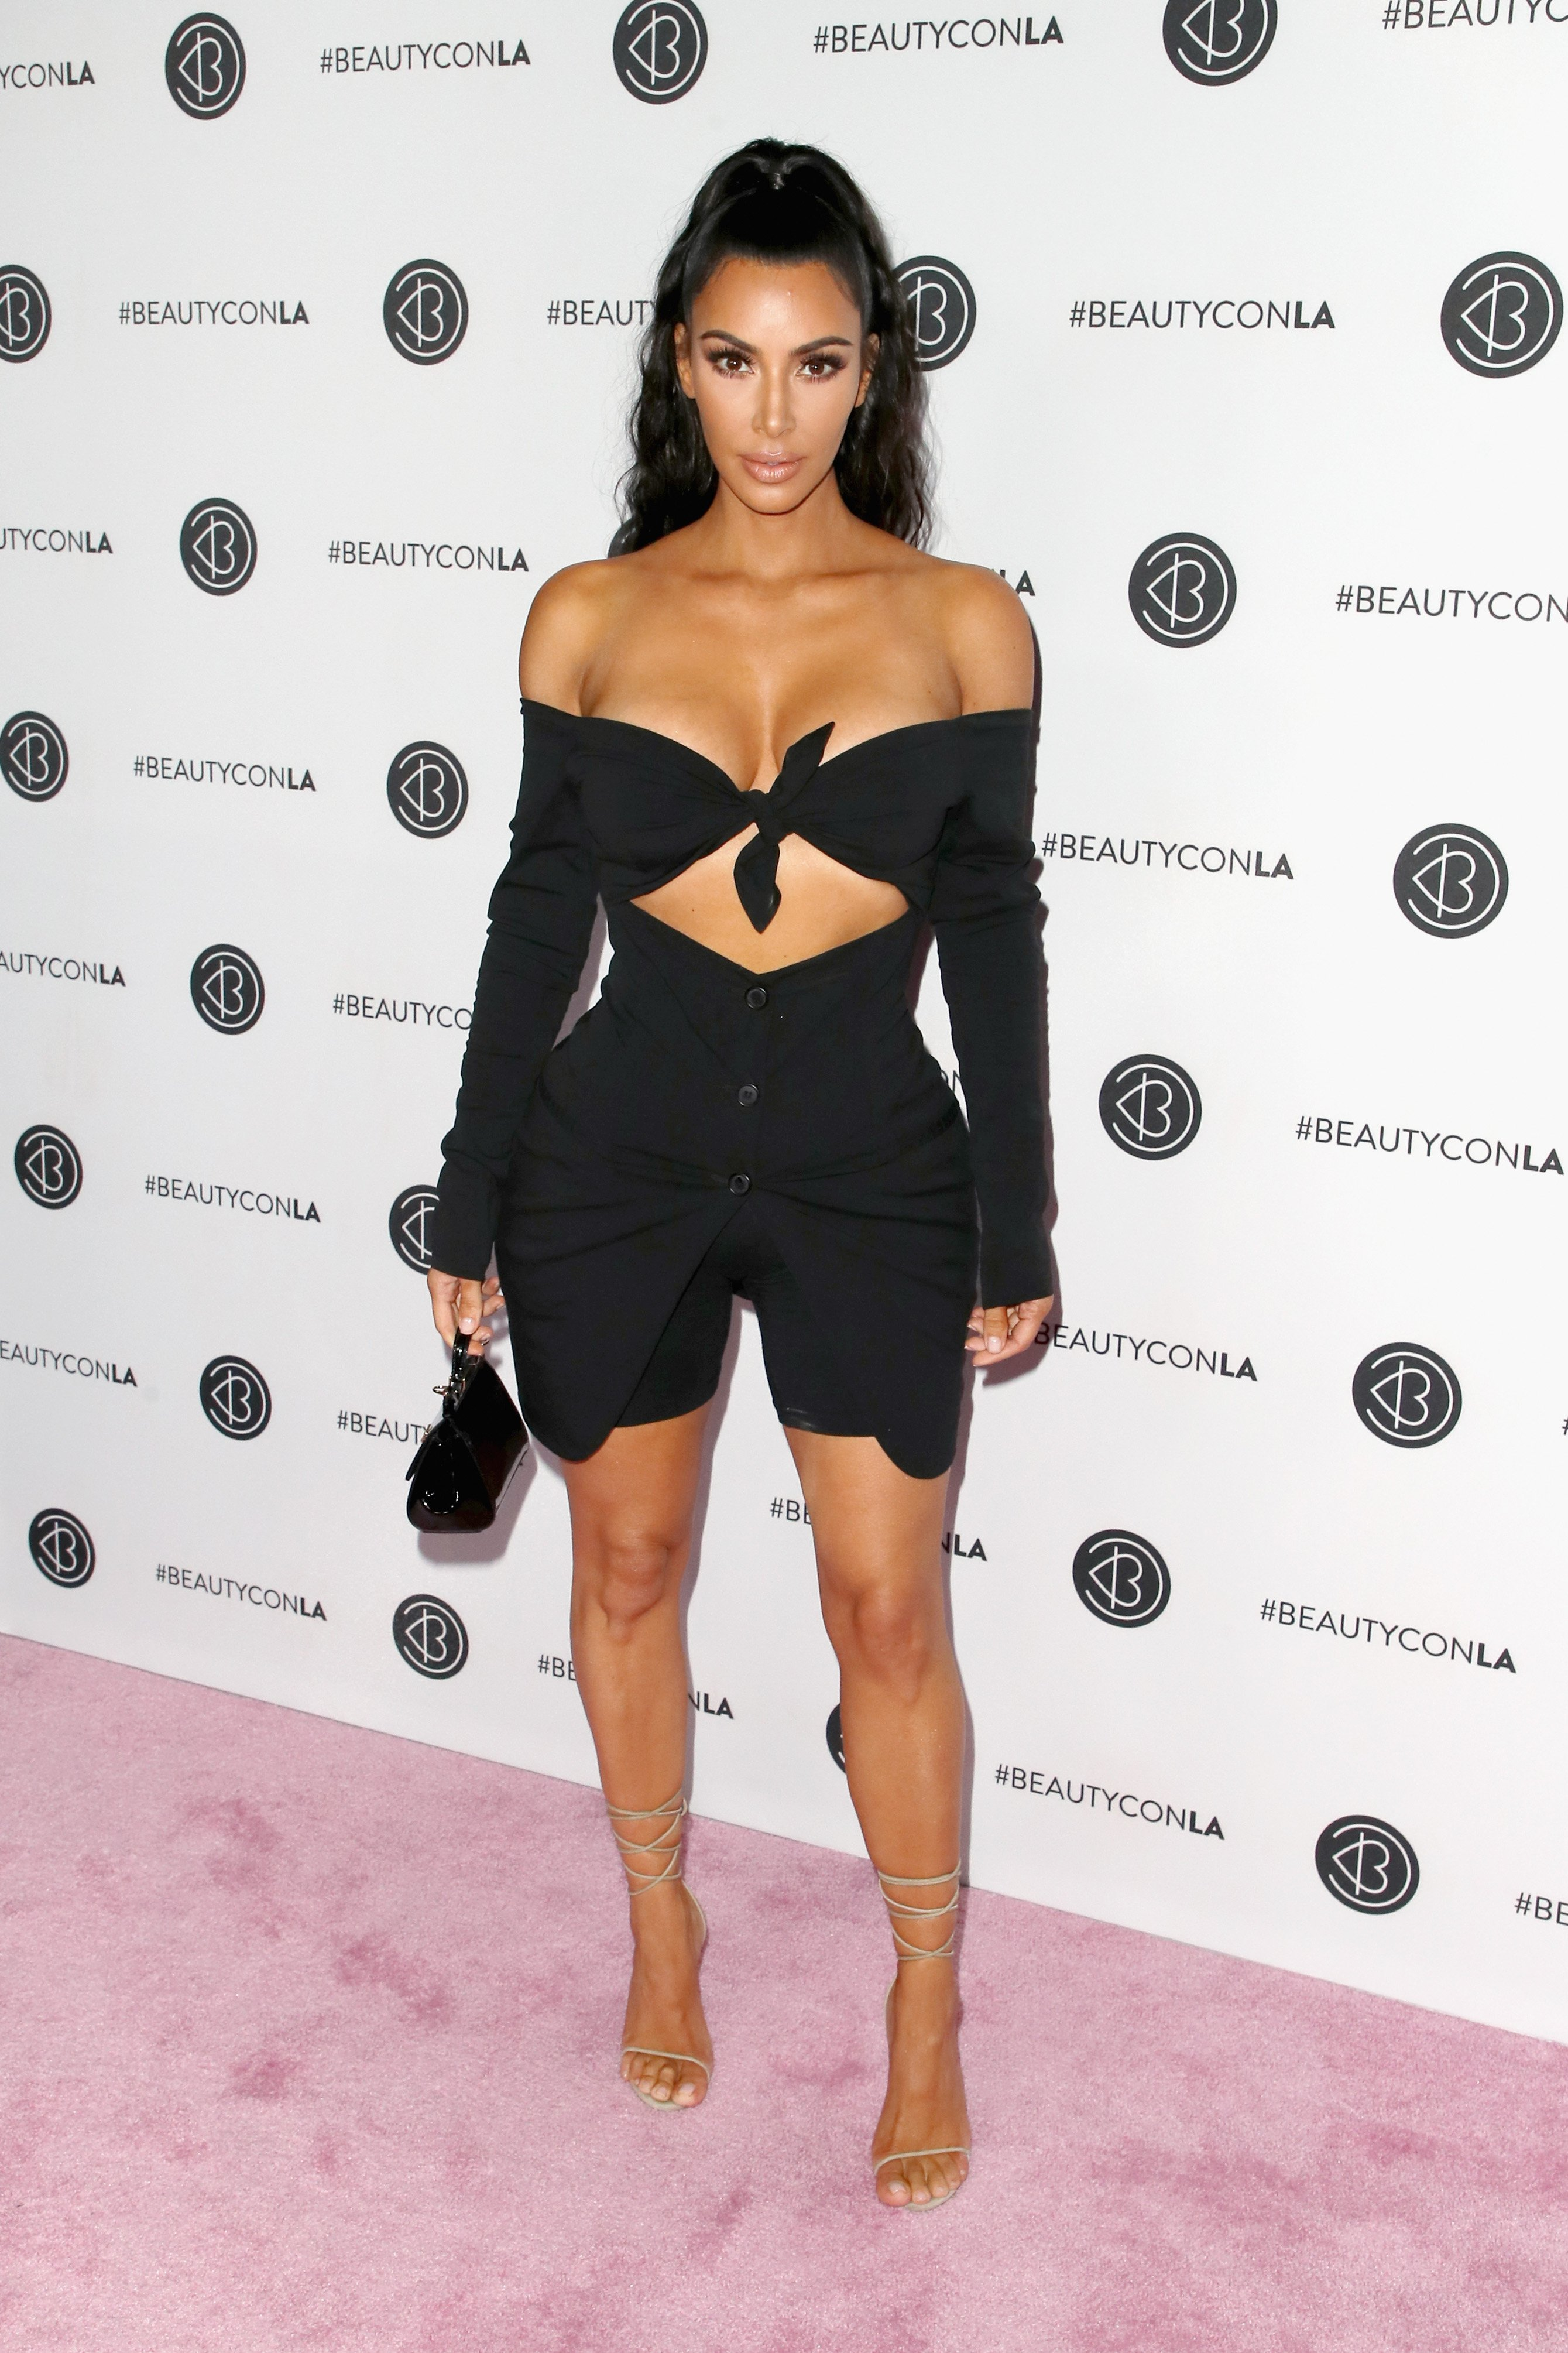 Kim Kardashian West attends the Beautycon Festival in Los Angeles, California on July 15, 2018 | Photo: Getty Images